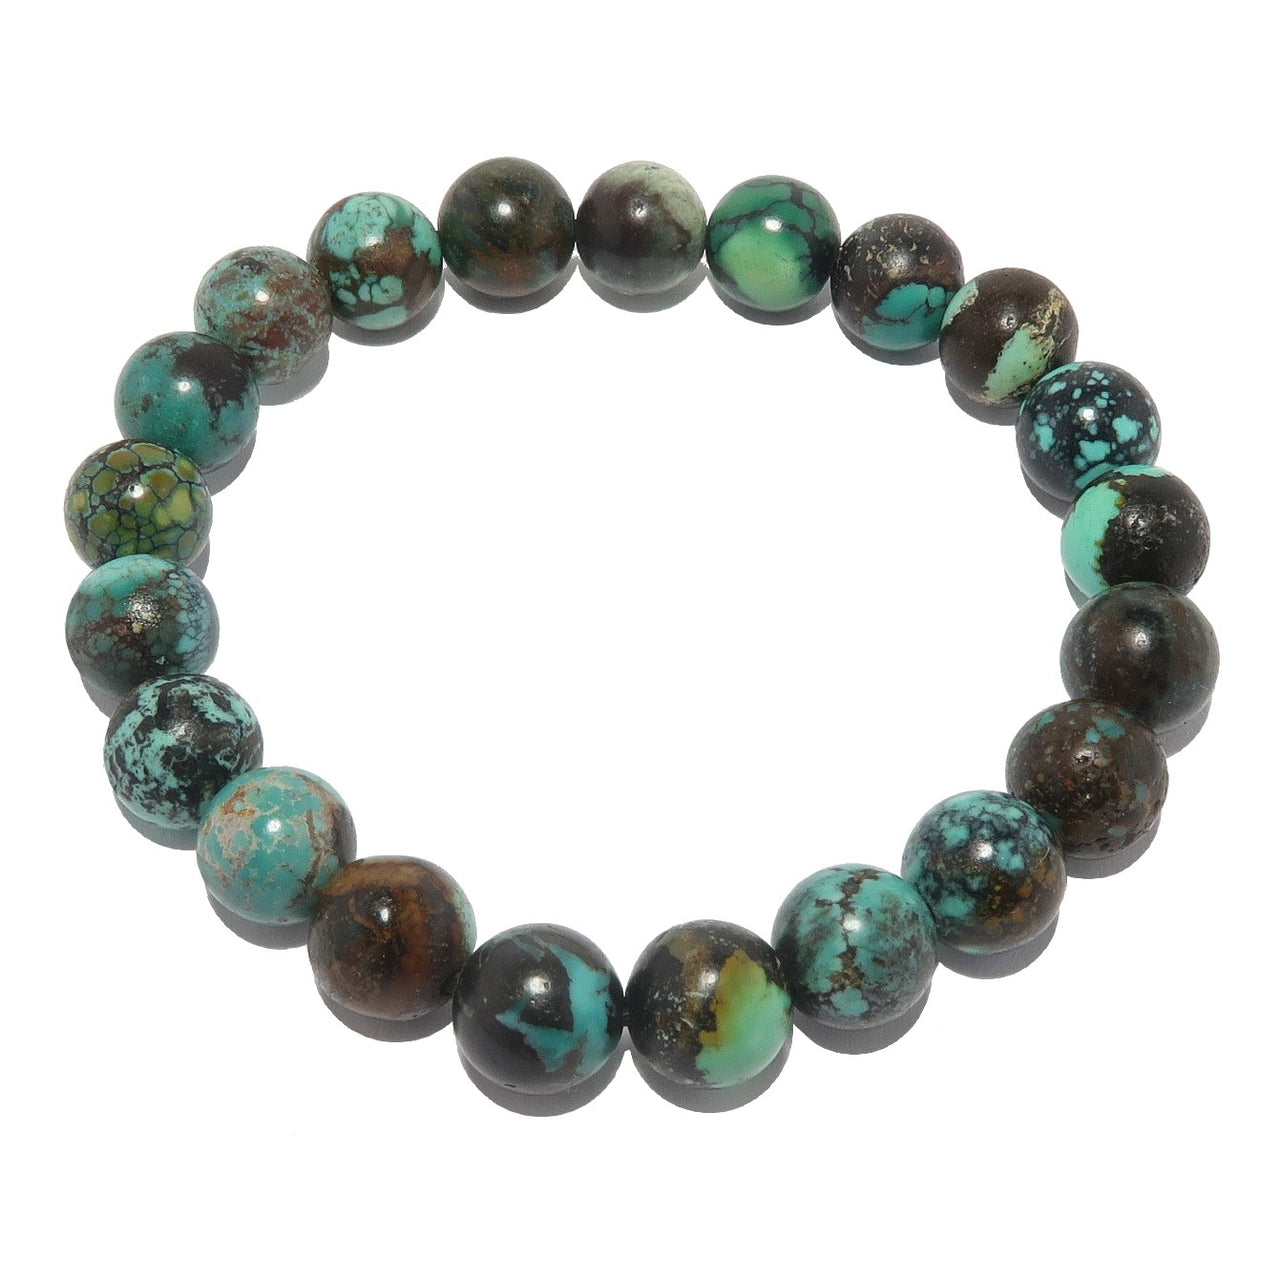 Turquoise Bracelet 7mm Genuine Blue Black Gemstone Round Crystal Healing Stretch B01